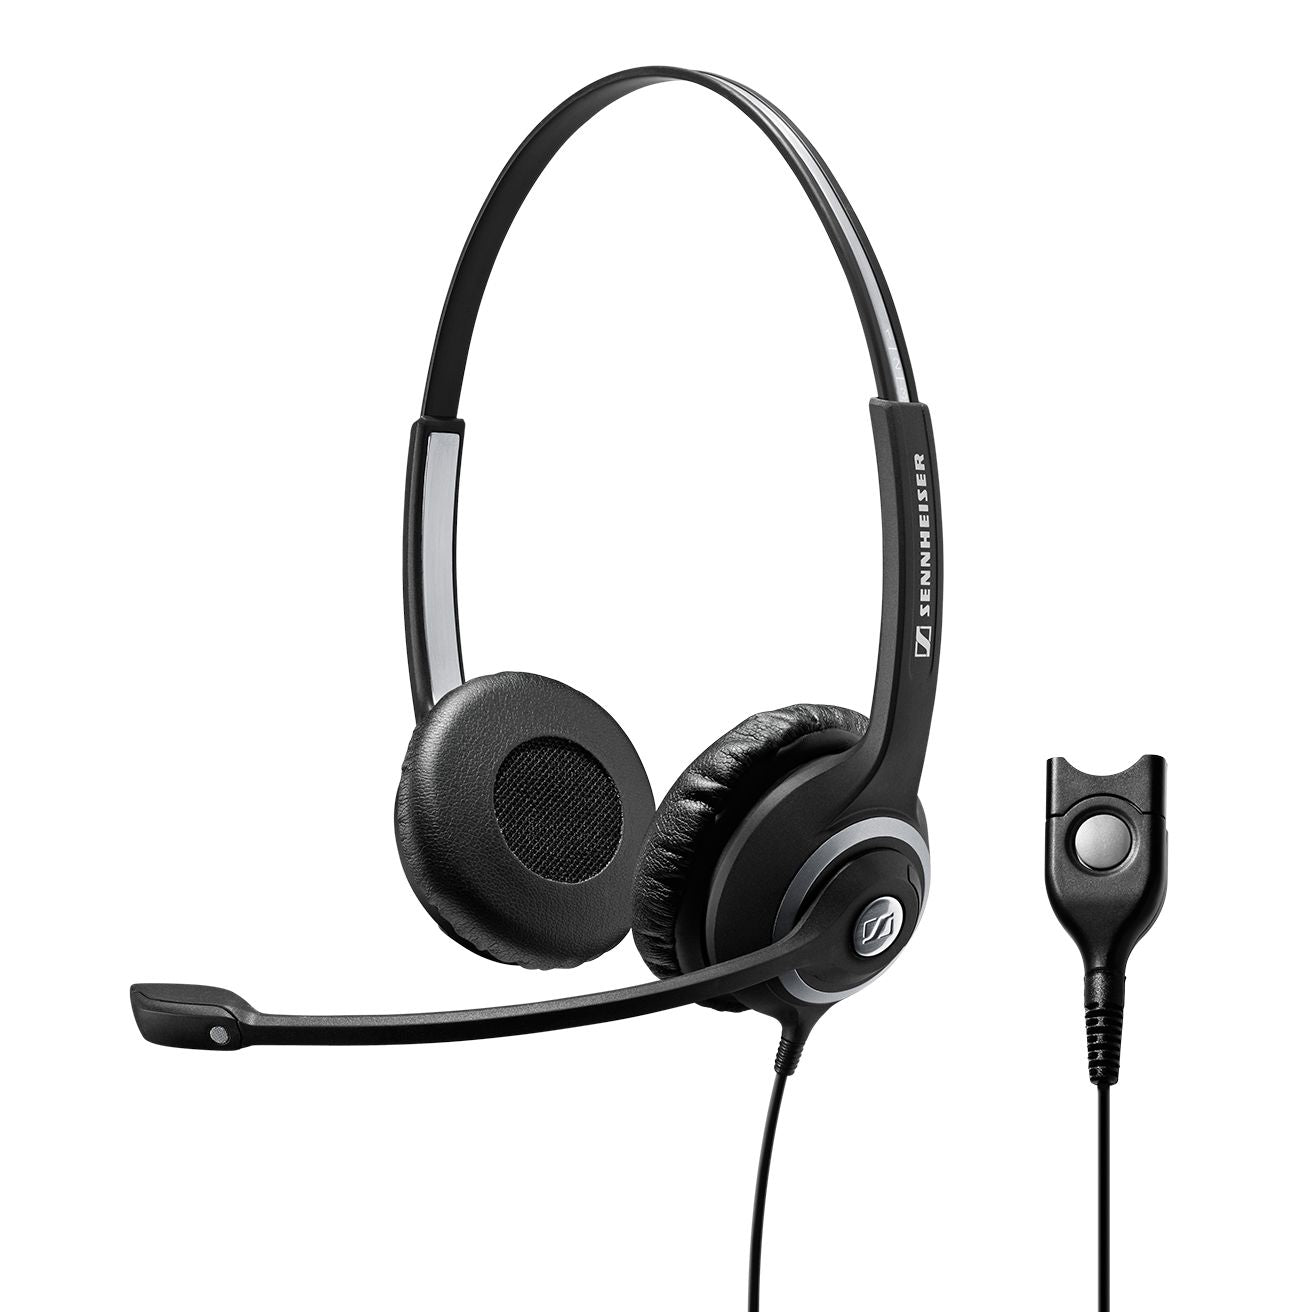 Sennheiser SC 268 - Optimized for high imp, NB